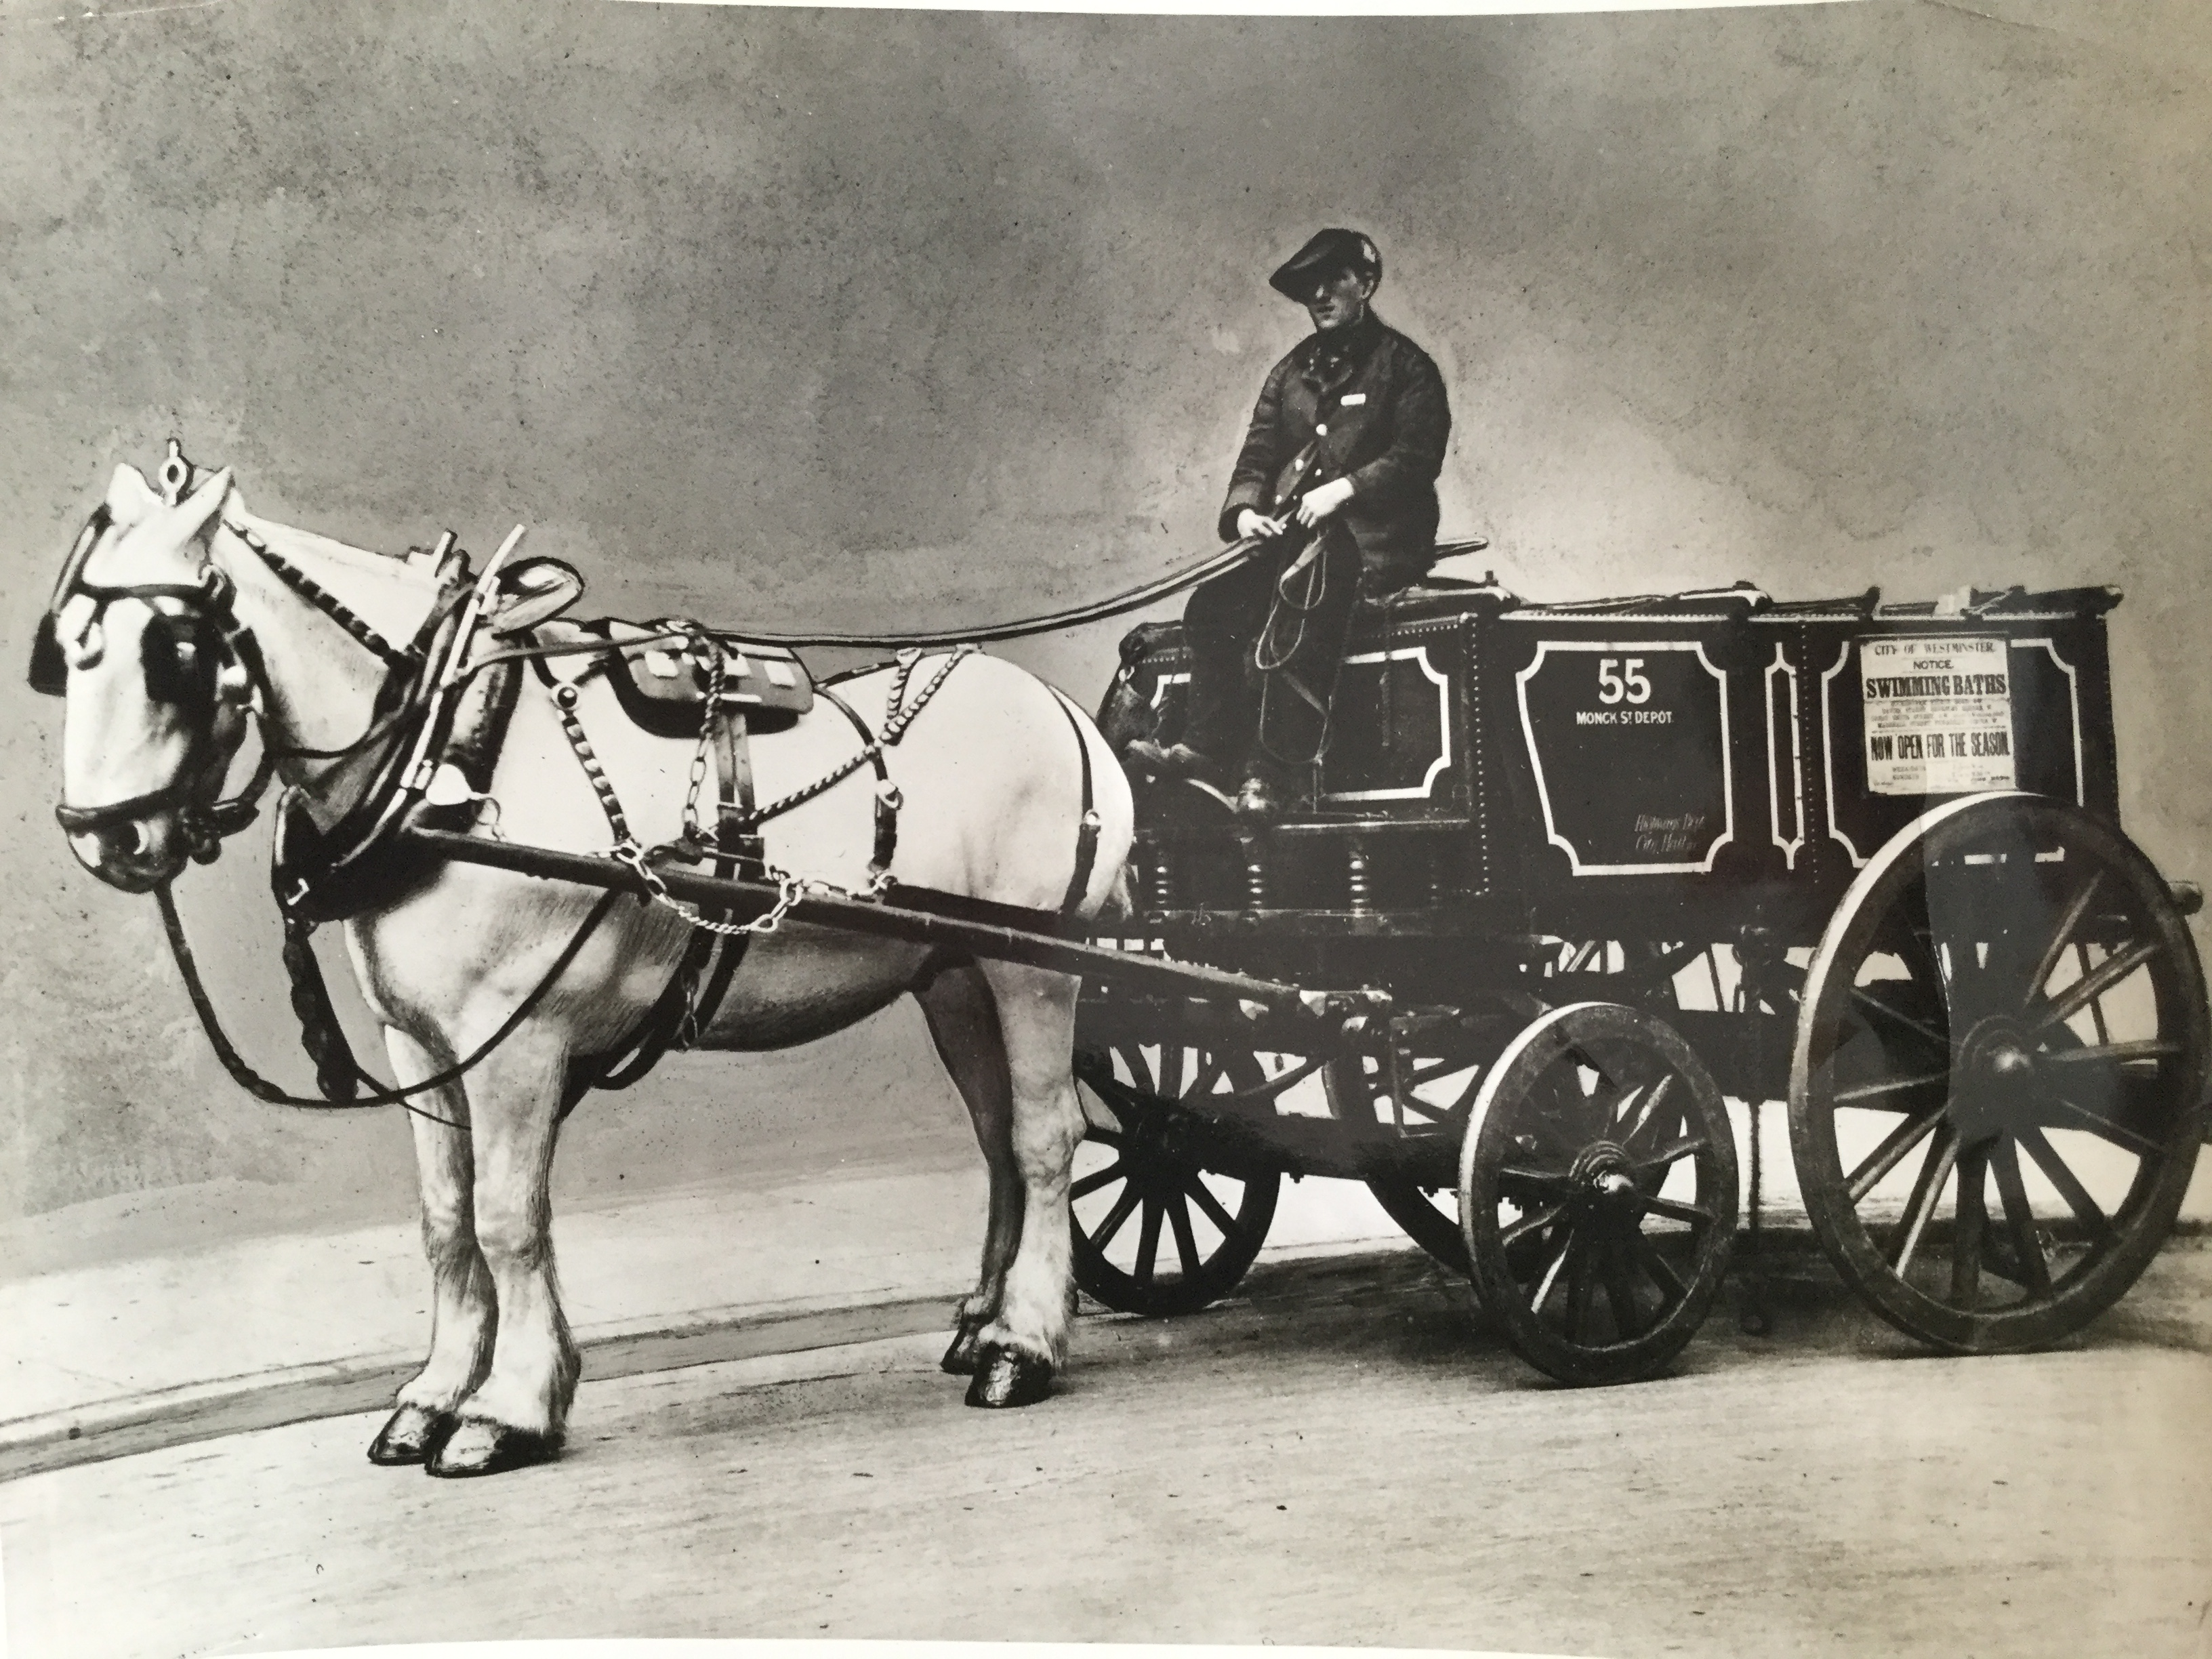 Private Ernest Boots was one of many men recruited by Westminster Council to cope with the Great Manure Crisis of the early 1900s when horse dung threatened to overwhelm Westminster's streets.